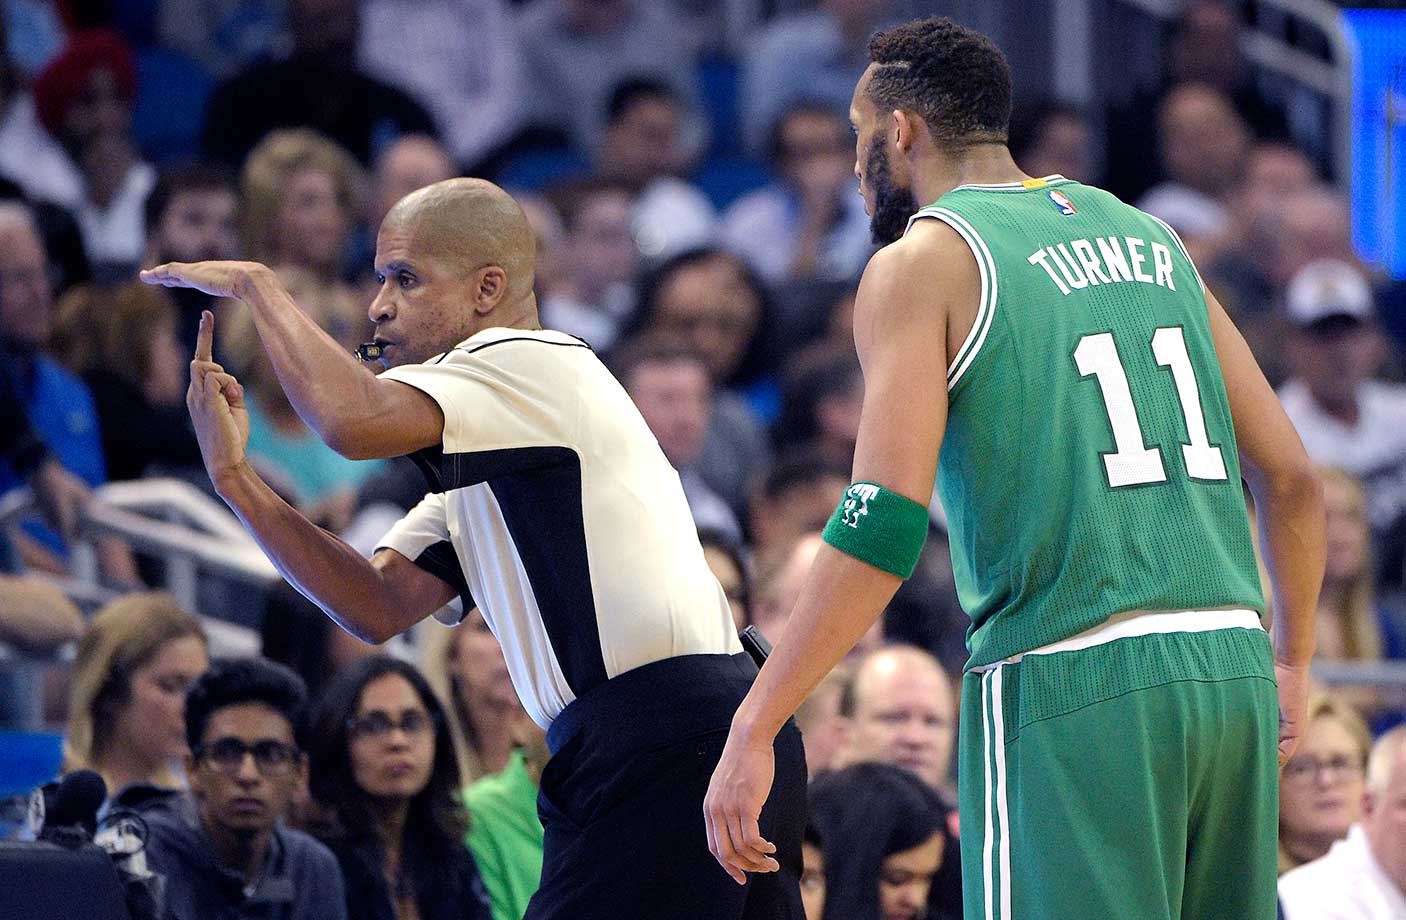 Boston Celtics guard Evan Turner receives a double-technical foul from referee Sean Corbin is ejected from the game after arguing a call during the game against the Orlando Magic. The Magic won 119-114.